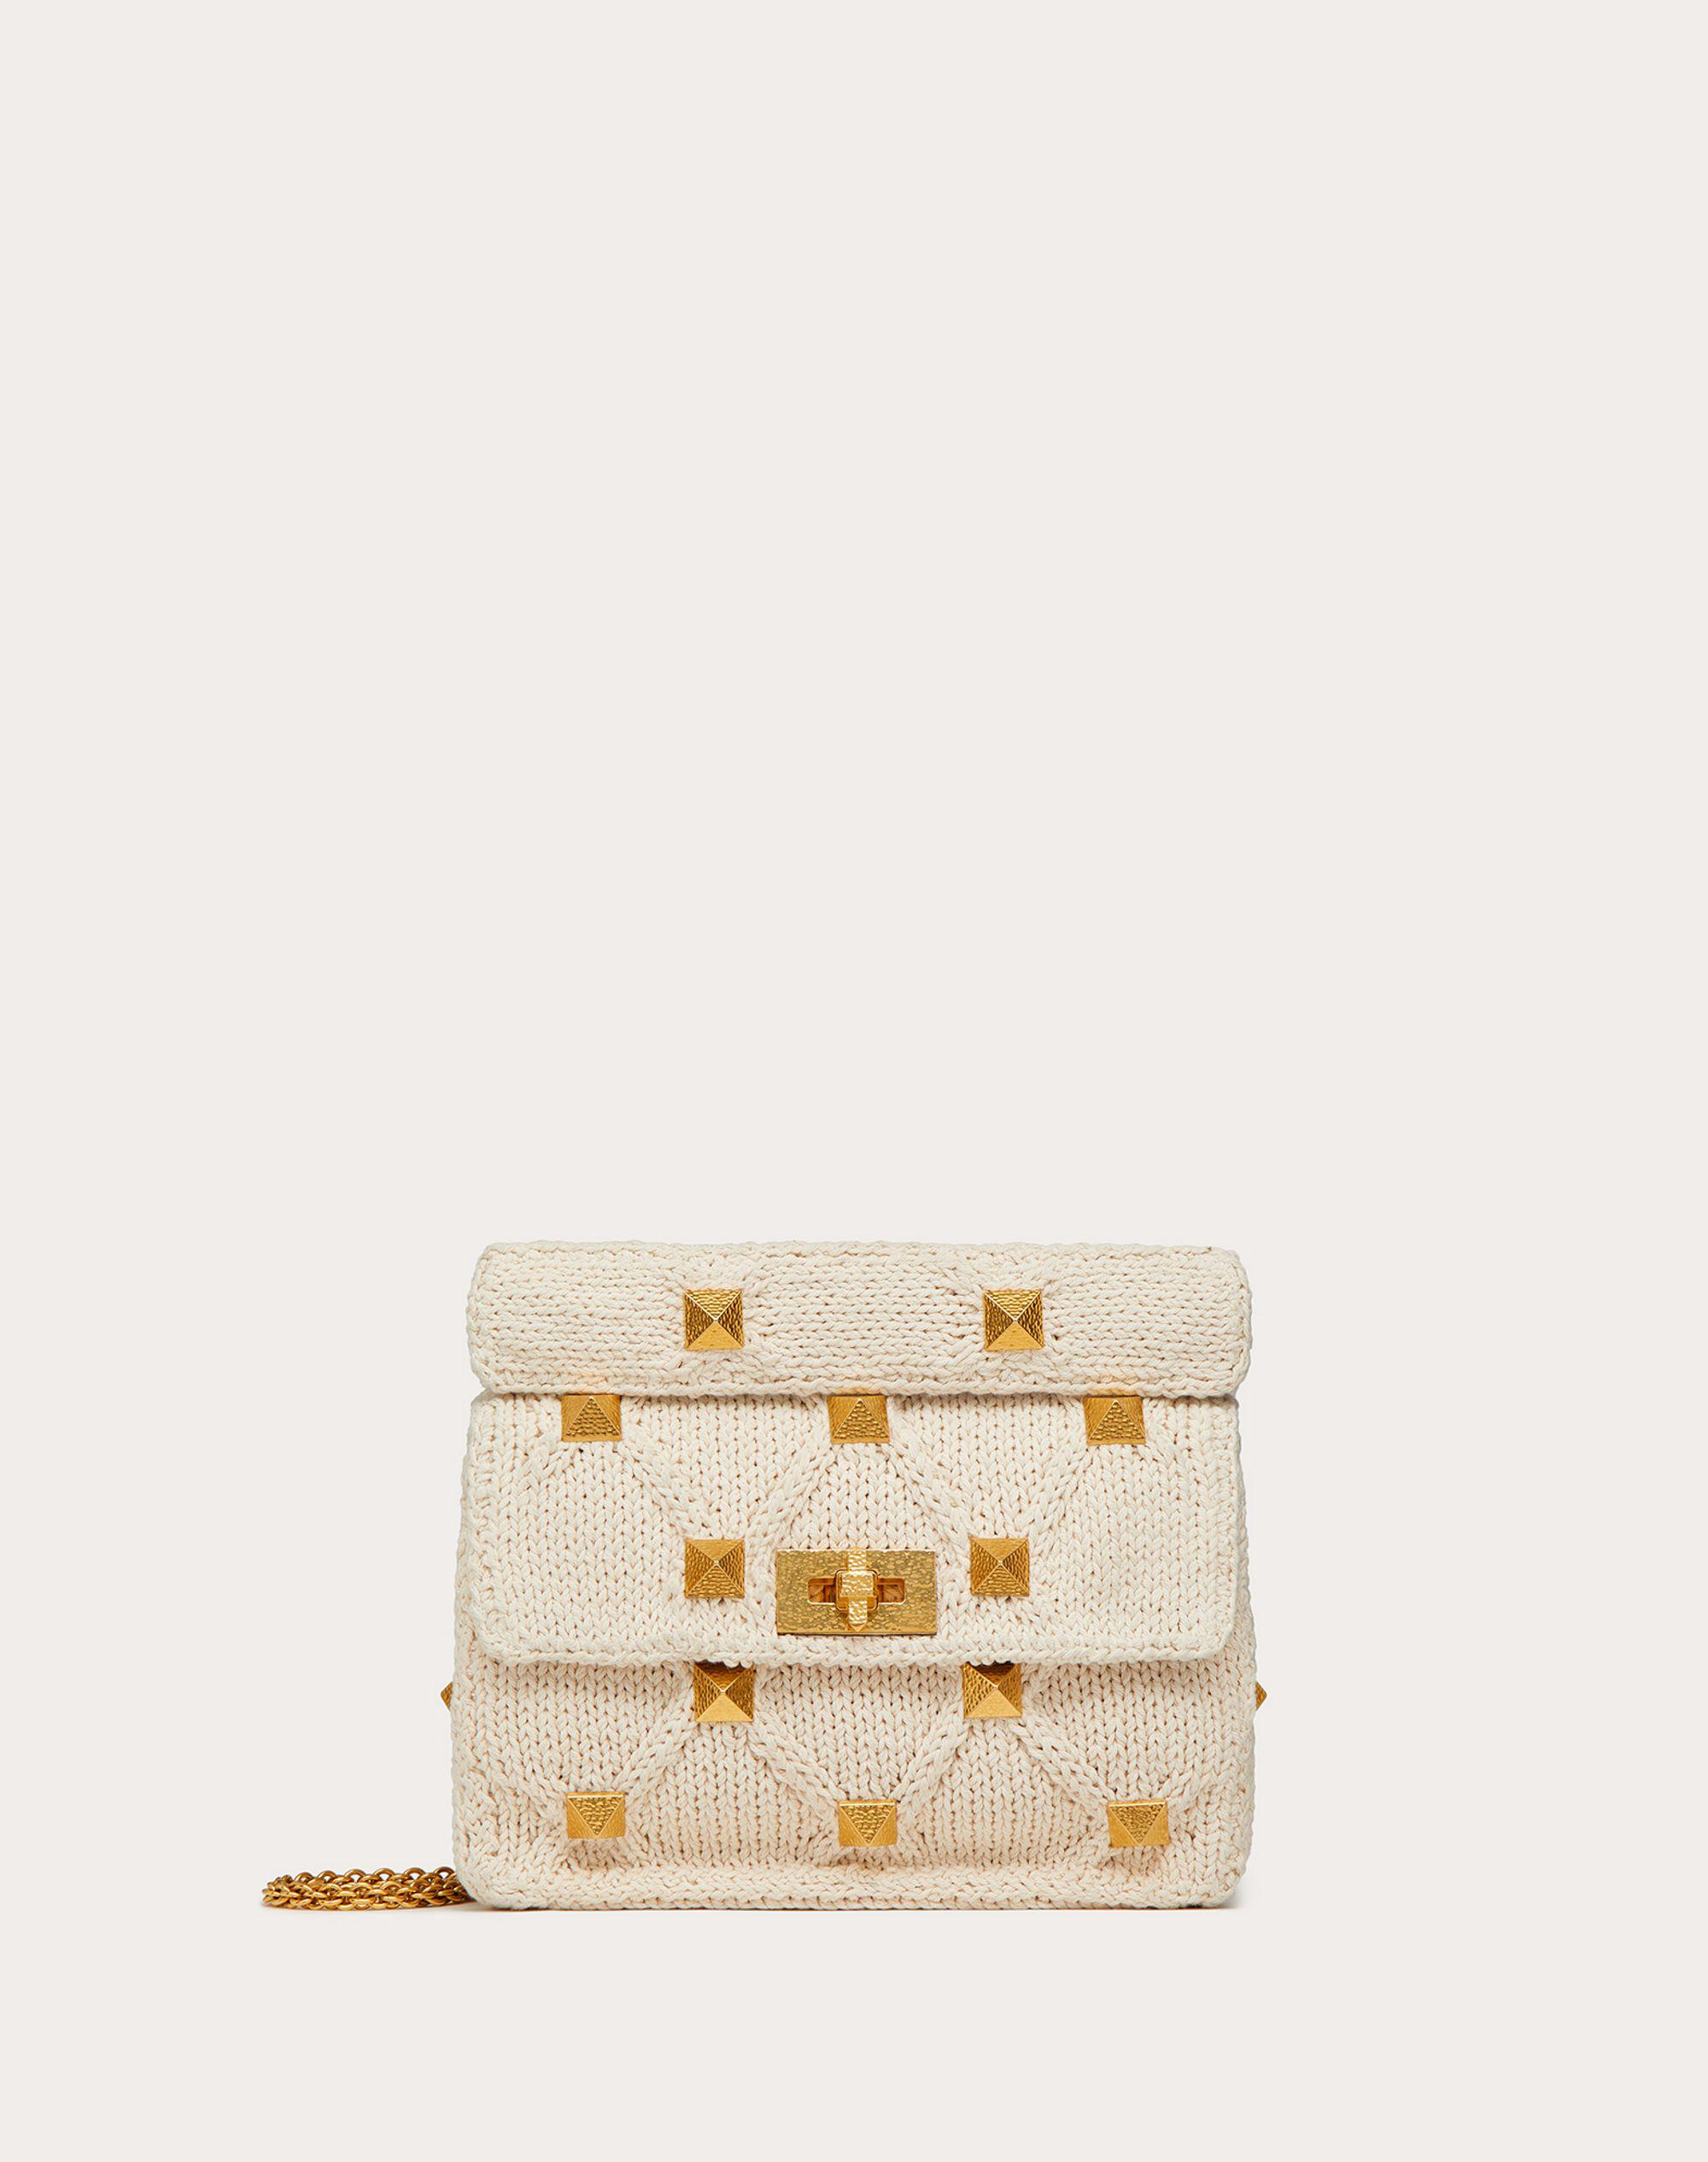 Medium Knitted Roman Stud The Shoulder Bag with Chain